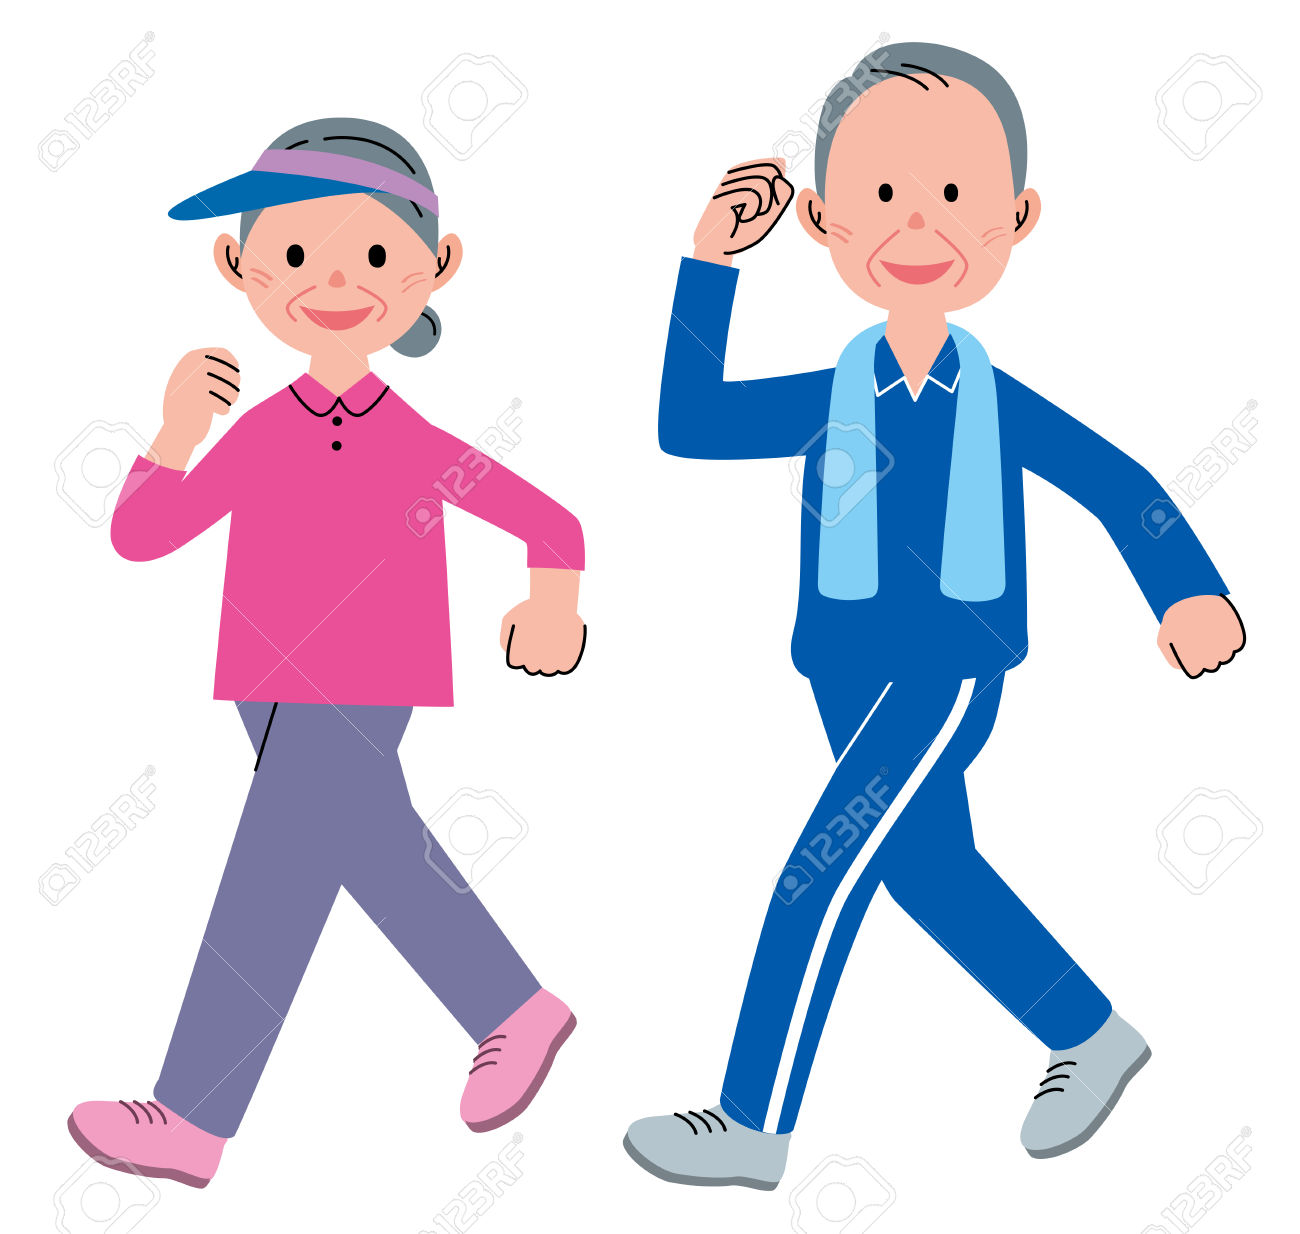 Fitness walking clipart image free Exercise Cartoon Clipart | Free download best Exercise Cartoon ... image free